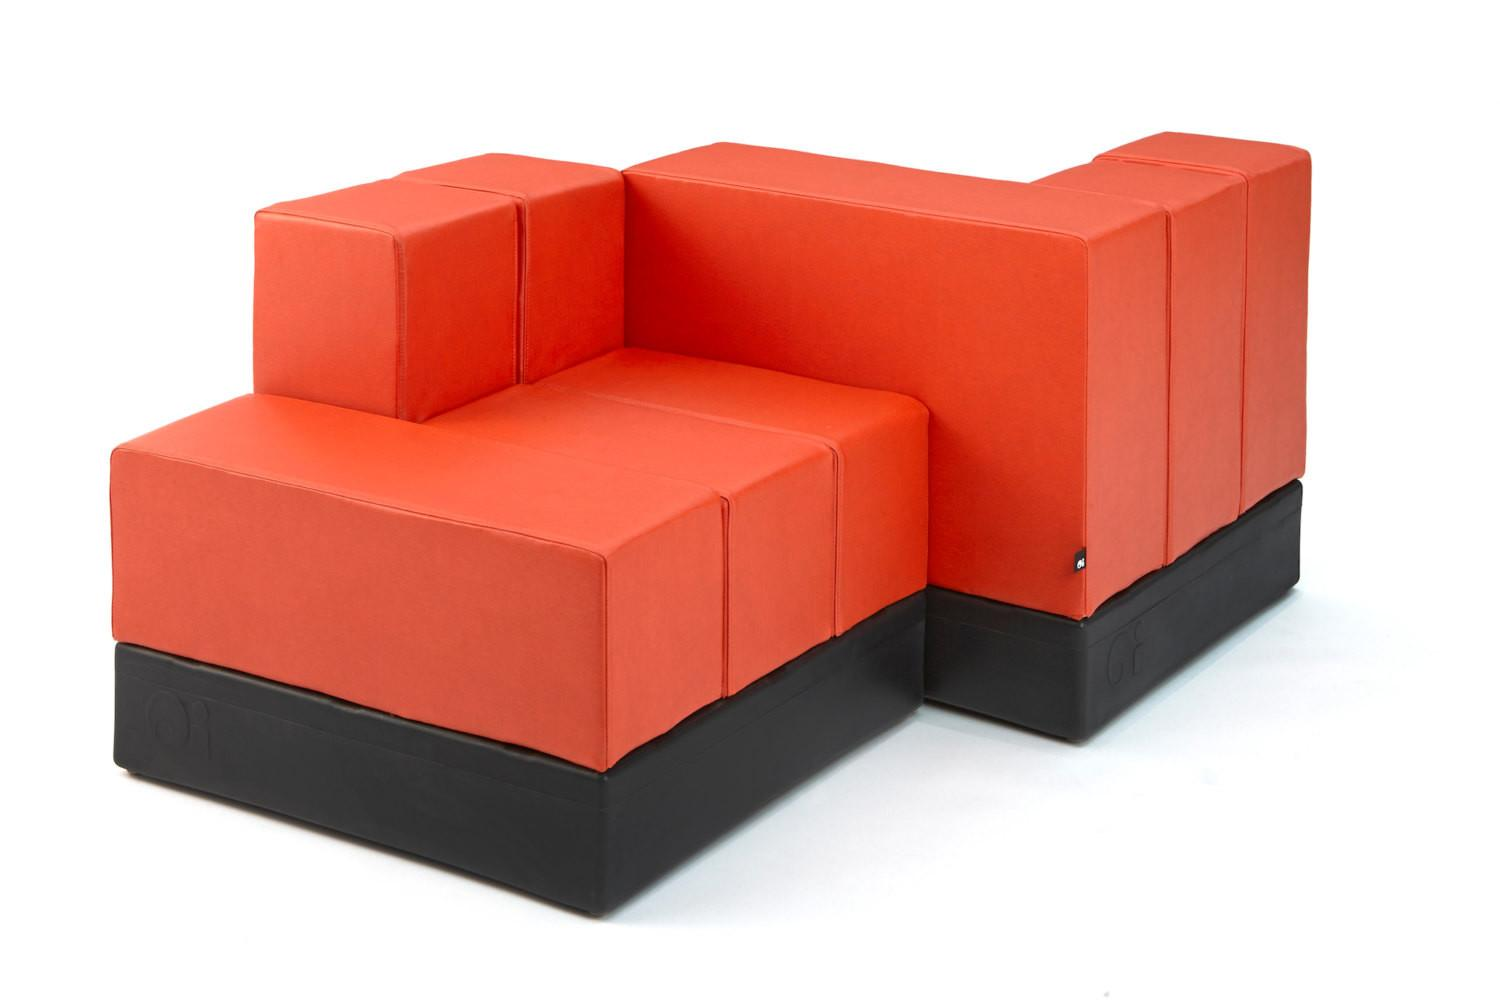 Furniture Doublescape Modular Seating Etsy